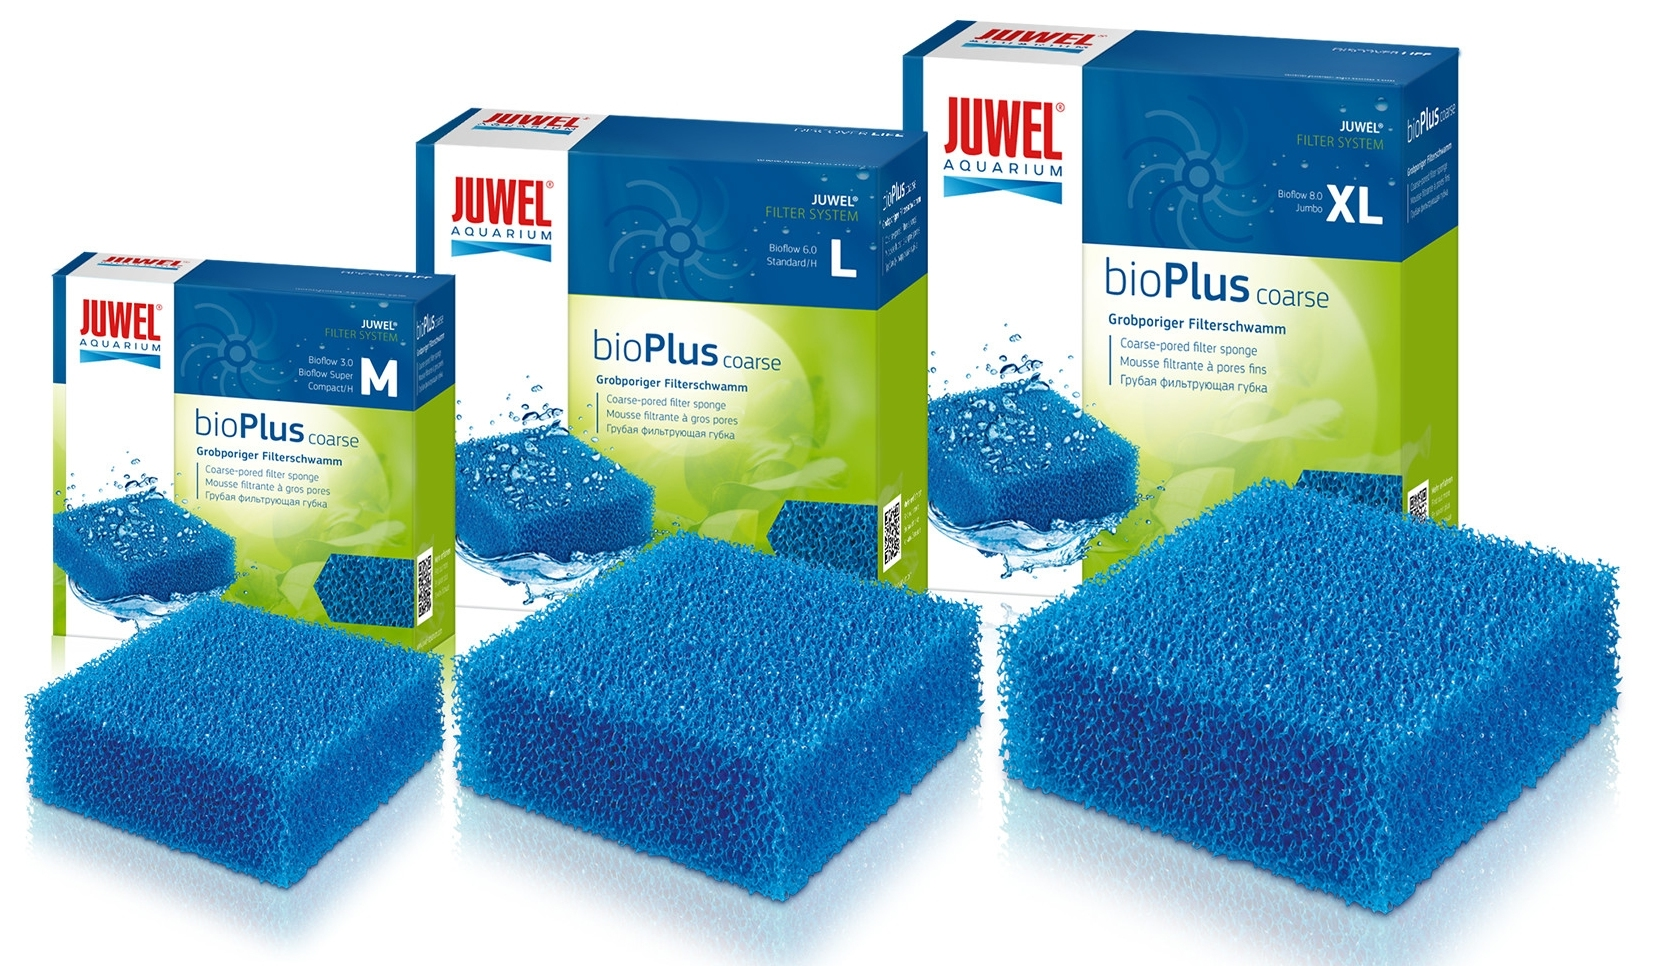 Shop Juwel bioPlus coarse -Blue Filter Sponge coarse-